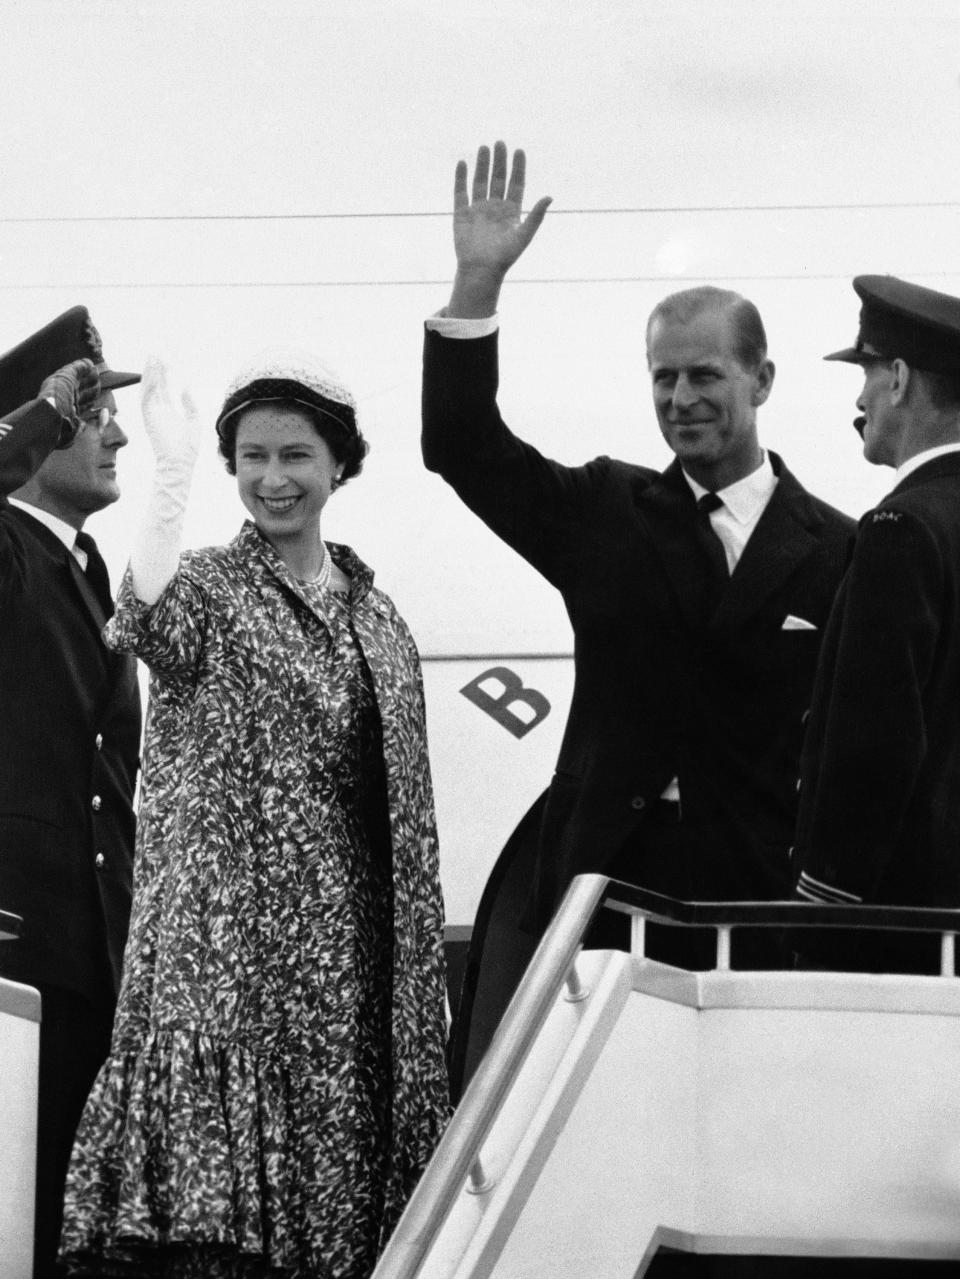 FILE - In this file photo dated June 18, 1959, Prince Philip waves as he and Queen Elizabeth II stand at top of plane ramp at London Airport, prior to their departure by jet airliner for 45-day tour of Canada. Prince Philip who died Friday April 9, 2021, aged 99, lived through a tumultuous century of war and upheavals, but he helped forge a period of stability for the British monarchy under his wife, Queen Elizabeth II. Philip helped create the Commonwealth of nations, with the queen at its head, in an attempt to bind Britain and its former colonies together on a more equal footing. (AP Photo, FILE)